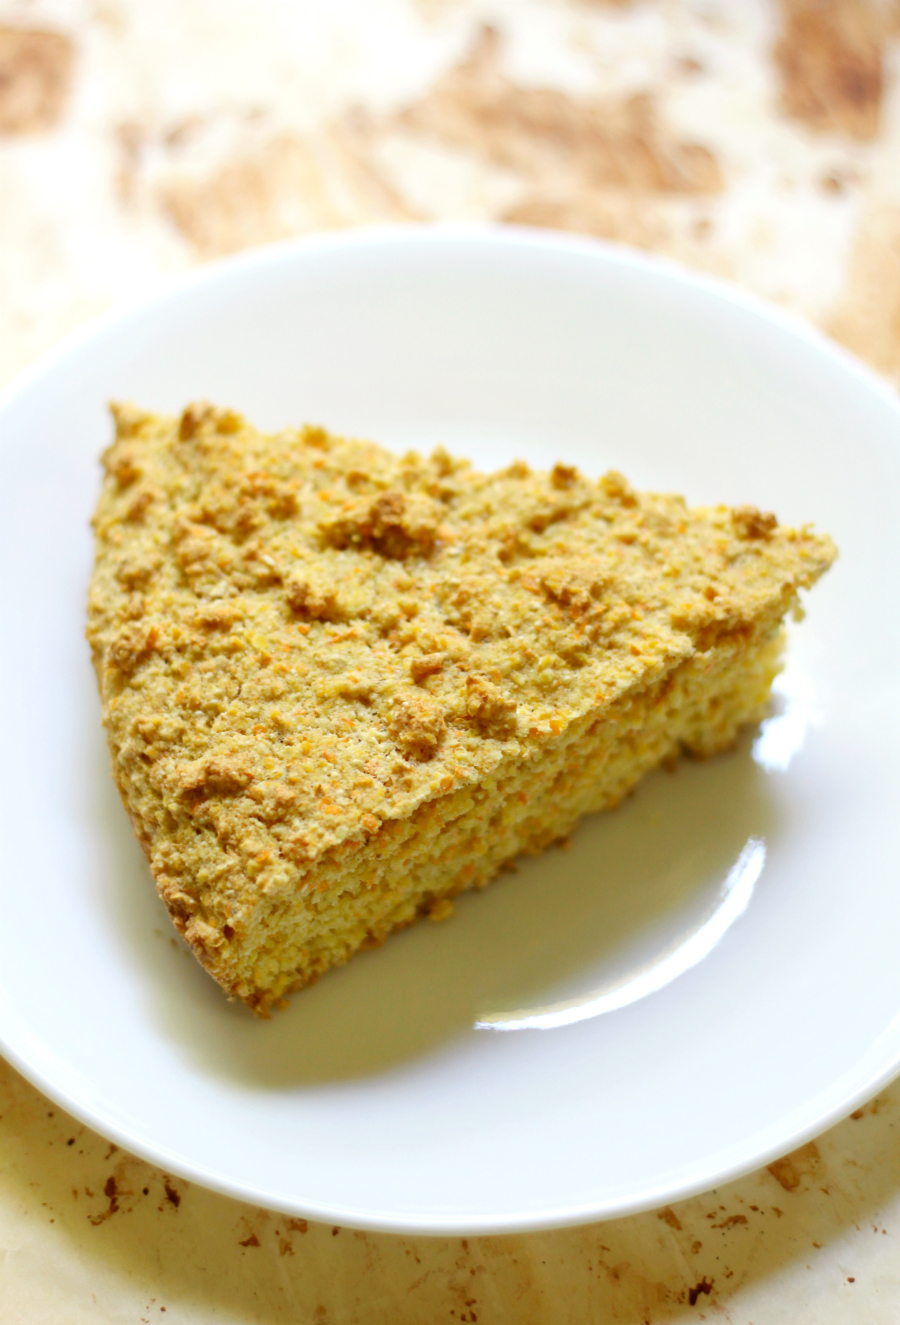 Rustic Gluten-Free Cornbread | Strength and Sunshine @RebeccaGF666 Enjoy the old-fashioned classic once again! Rustic Gluten-Free Cornbread that's vegan and top 8 allergy-free. Baked right in your grandma's seasoned cast iron skillet, this cornbread recipe will bring back all the comfort and good feels!